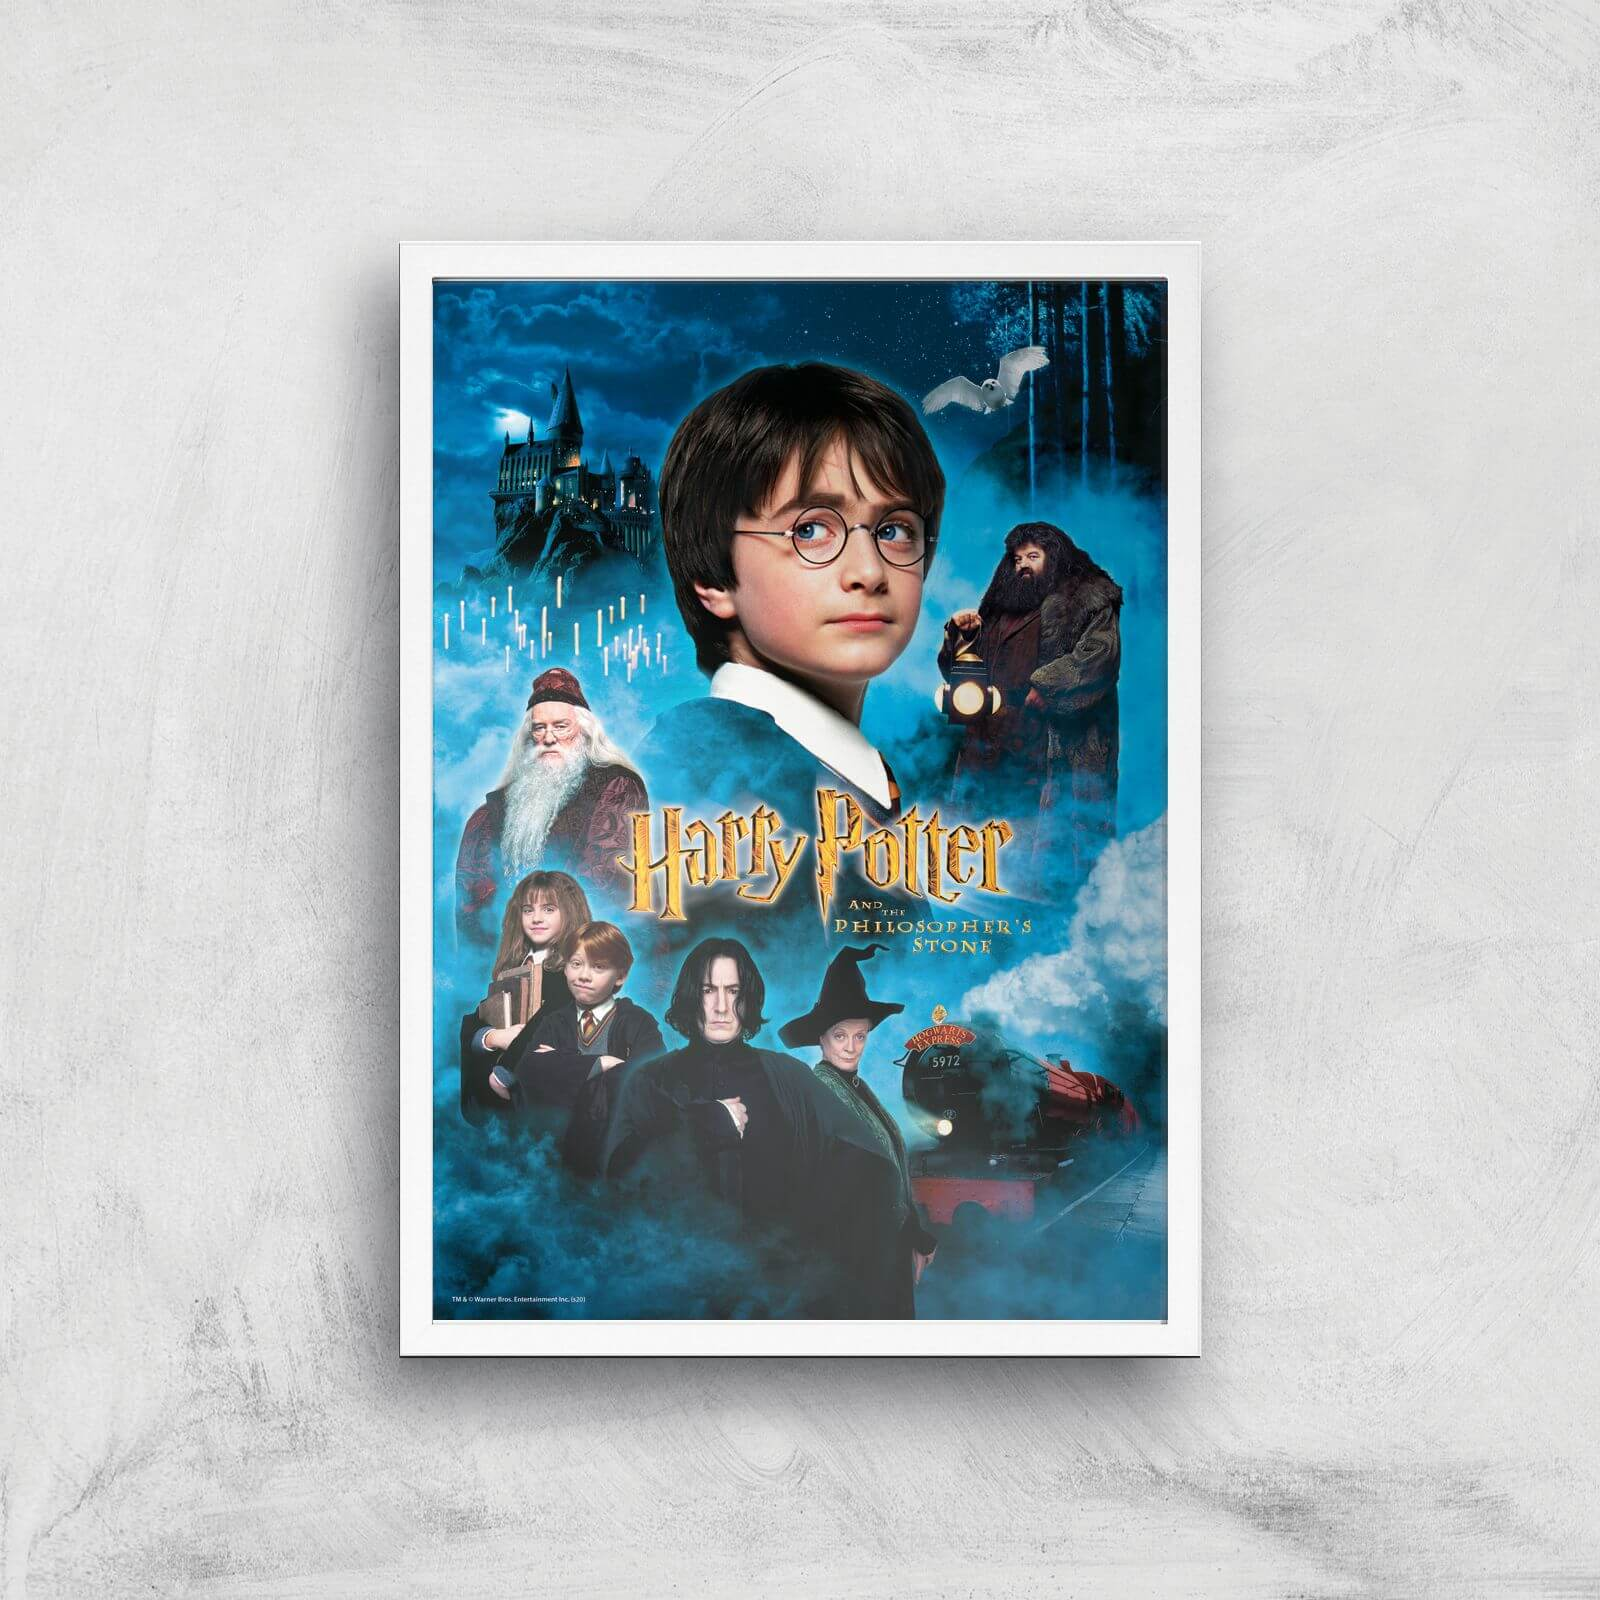 Harry Potter and the Philosopher's Stone Giclee Art Print - A2 - White Frame